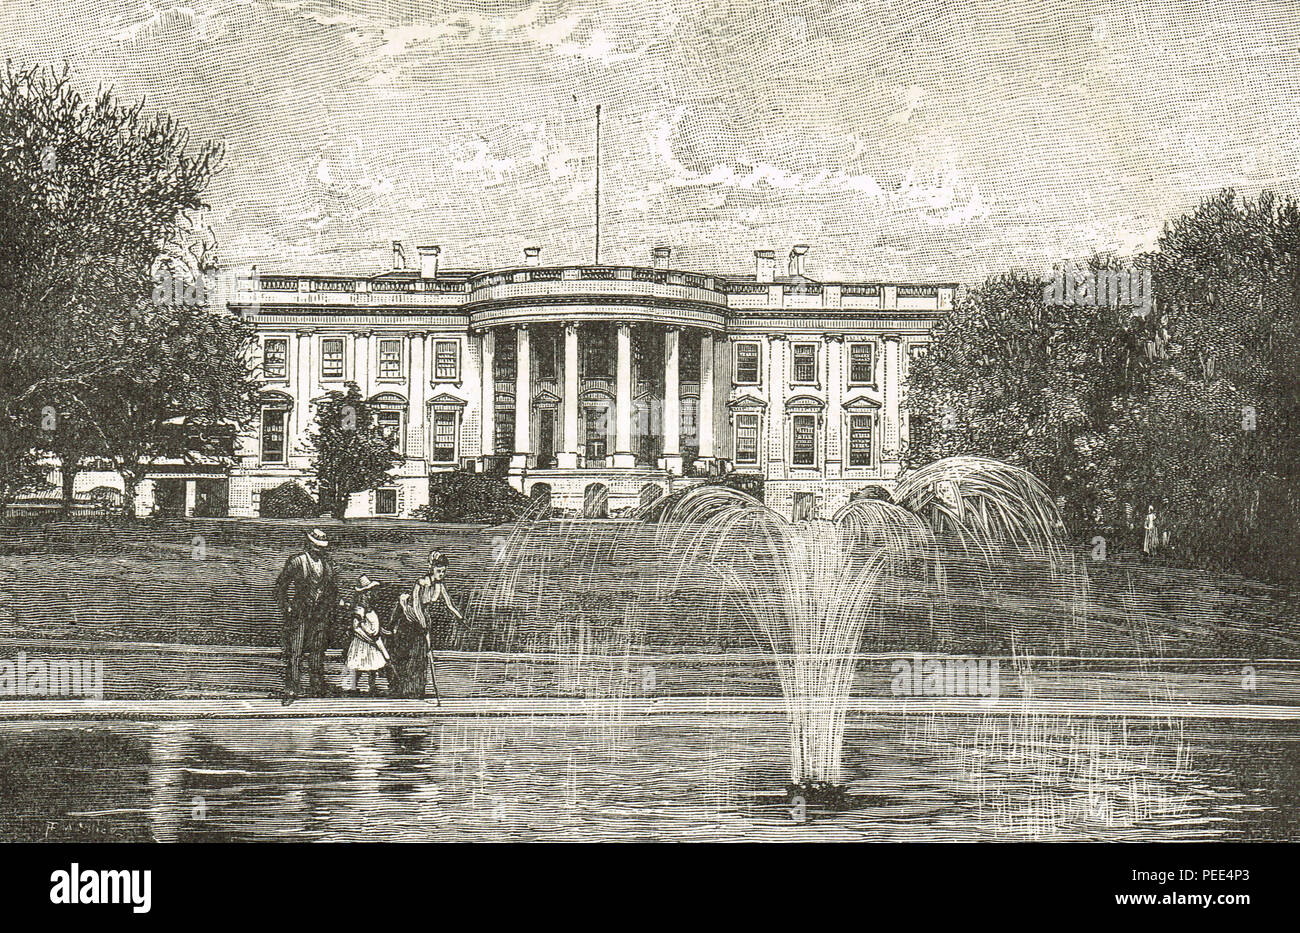 The White House, Washington, America, circa 1893, during the presidency of Grover Cleveland - Stock Image